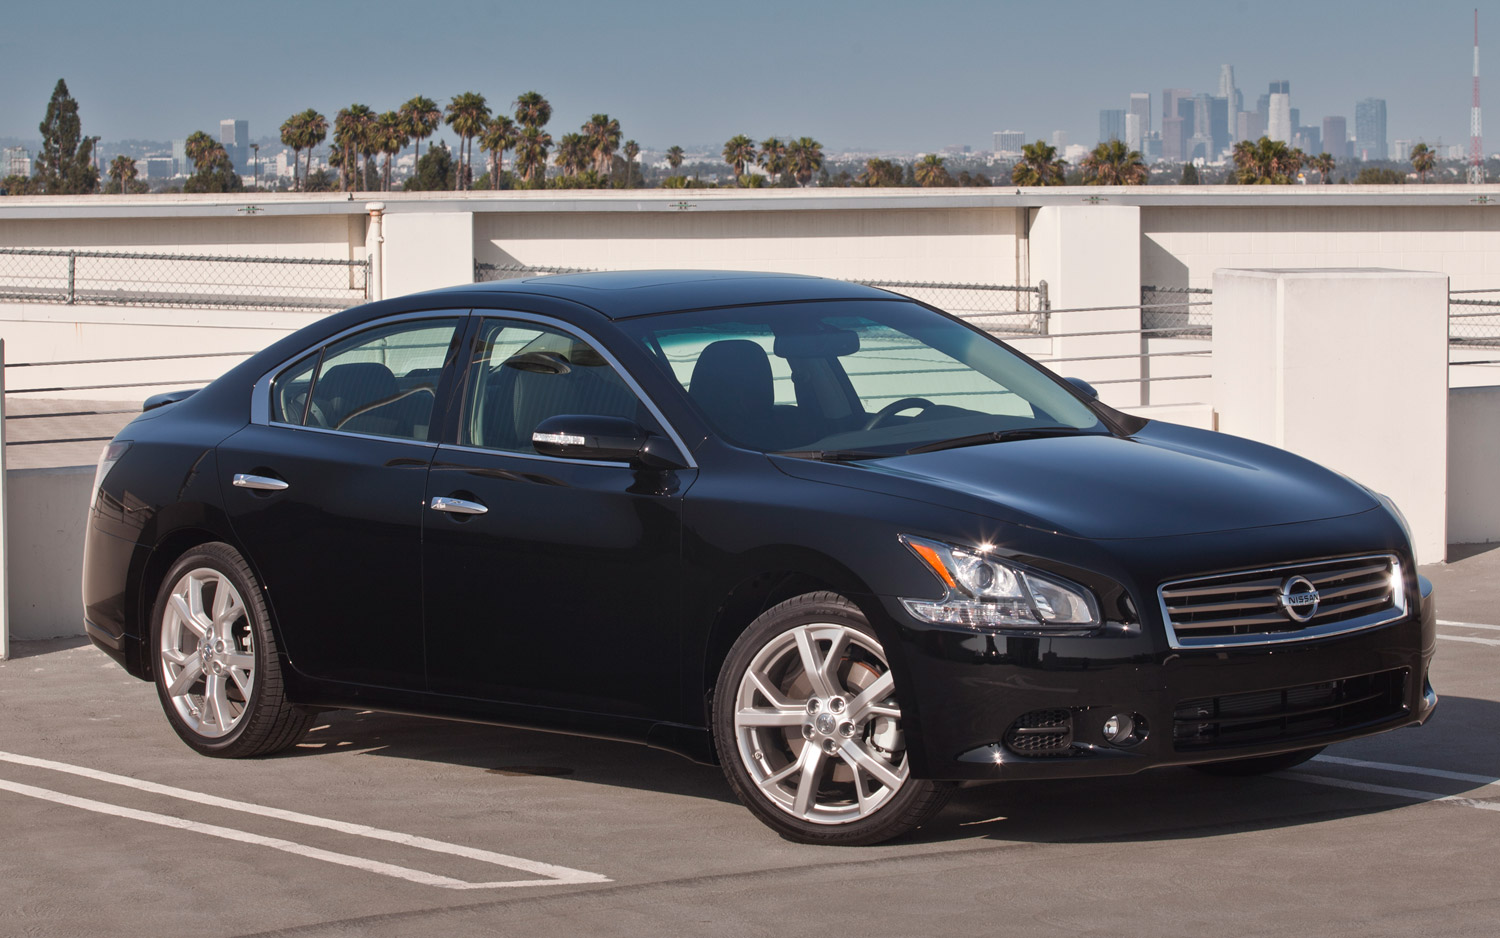 The best of cars: Nissan Maxima 2013